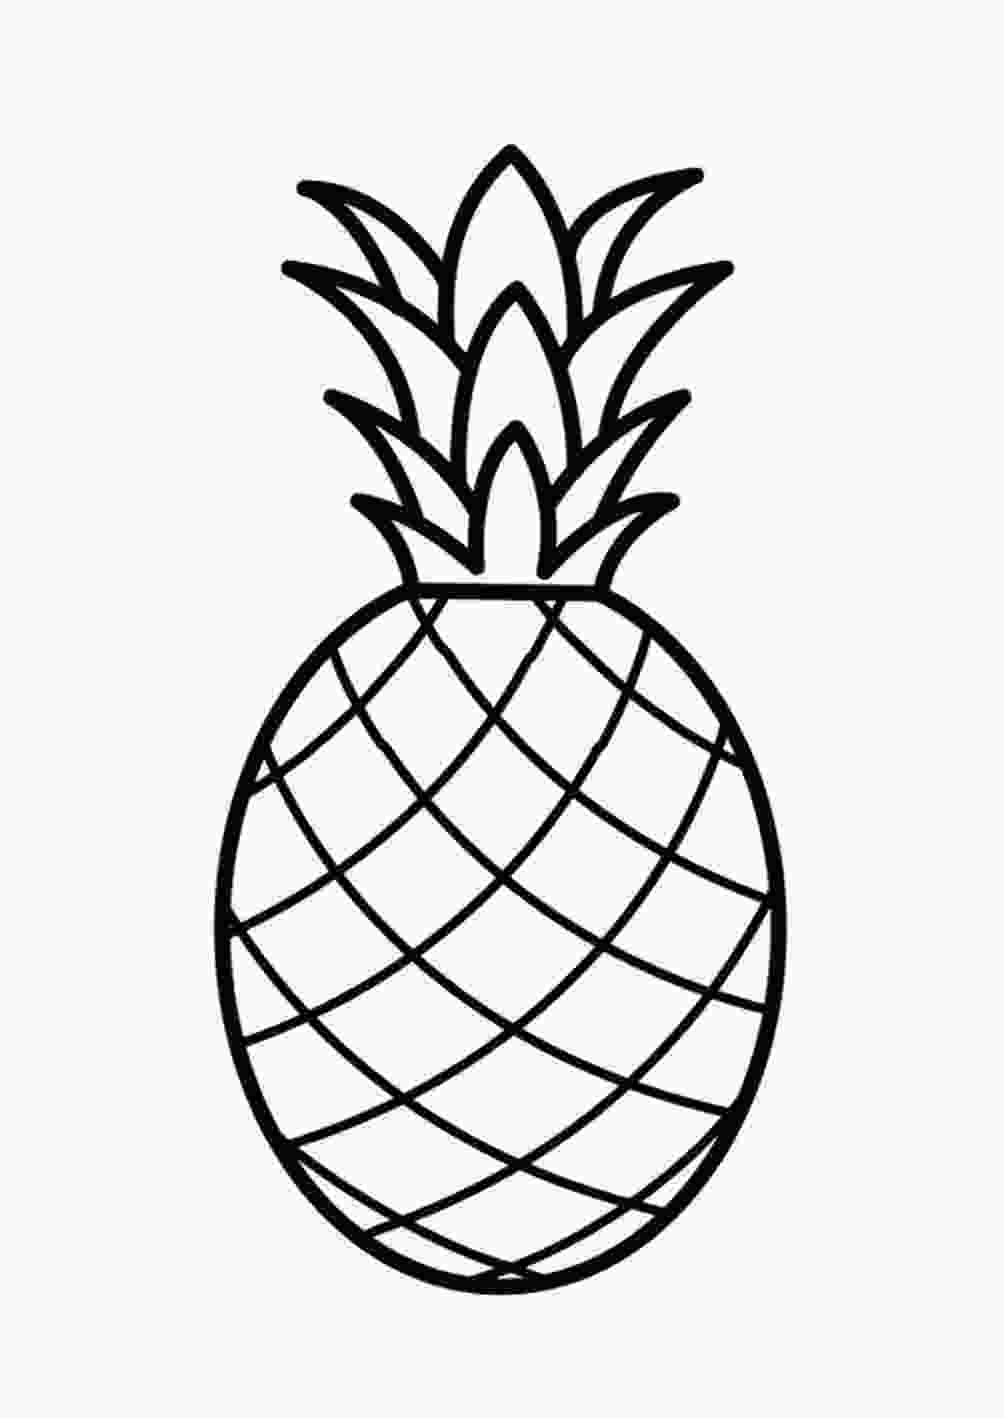 pineapple colouring picture pineapple coloring page only coloring pages